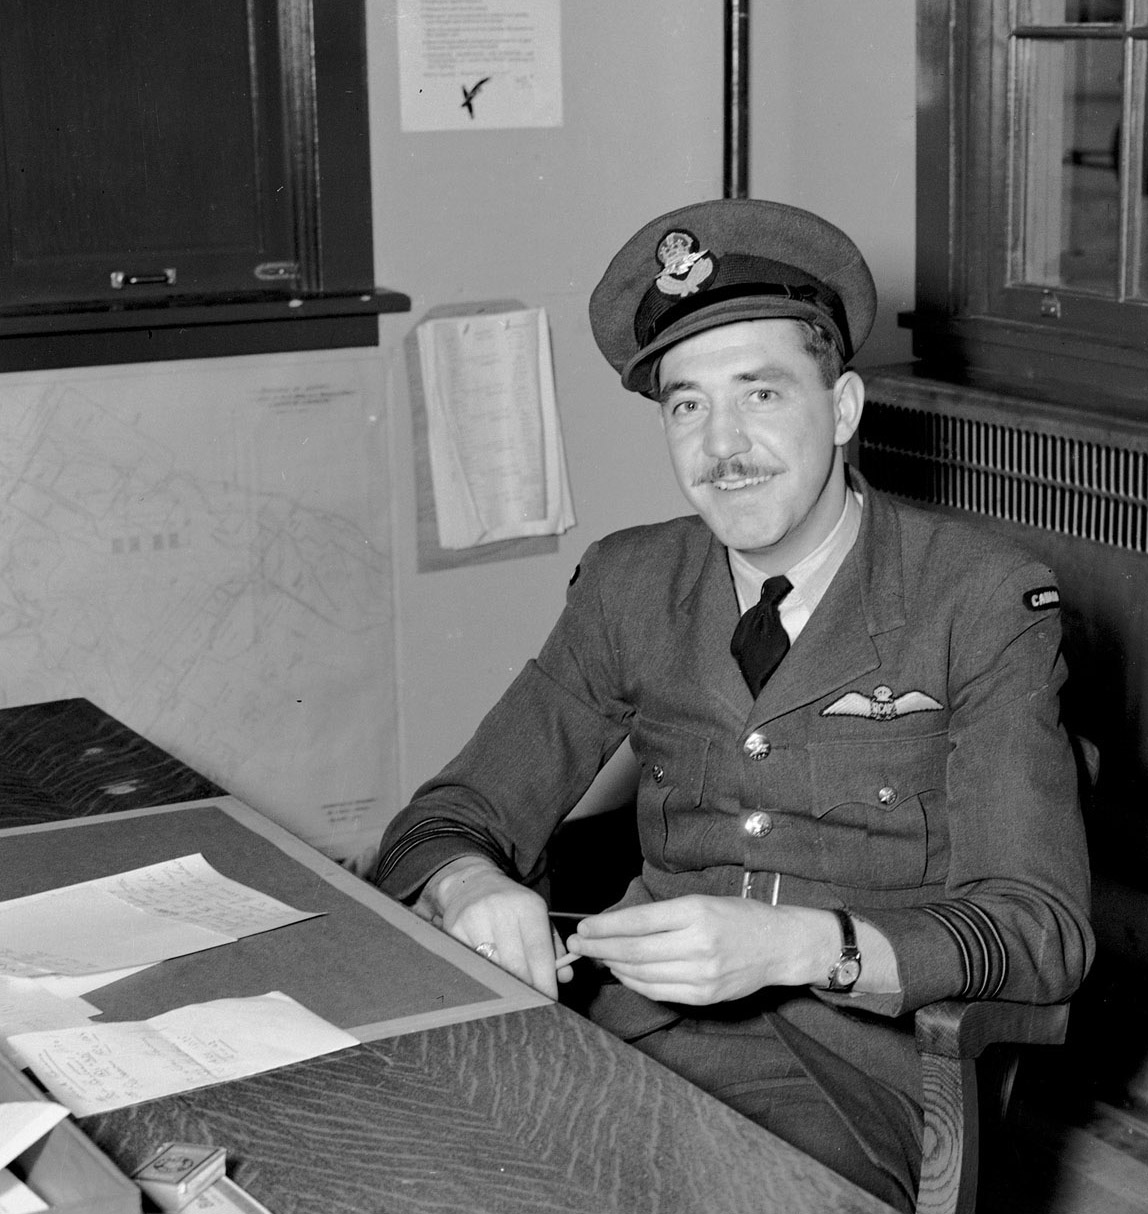 Battle of Britain pilot Wing Commander Edwin Michael Reyno, photographed at No. 1 Operational Training Unit in Bagotville, Quebec, on November 30, 1942, while he was chief instructor. In 1941, Reyno took command of No. 115 Squadron, a fighter squadron established to protect Canada's west coast. PHOTO: DND Archives, PL-12672